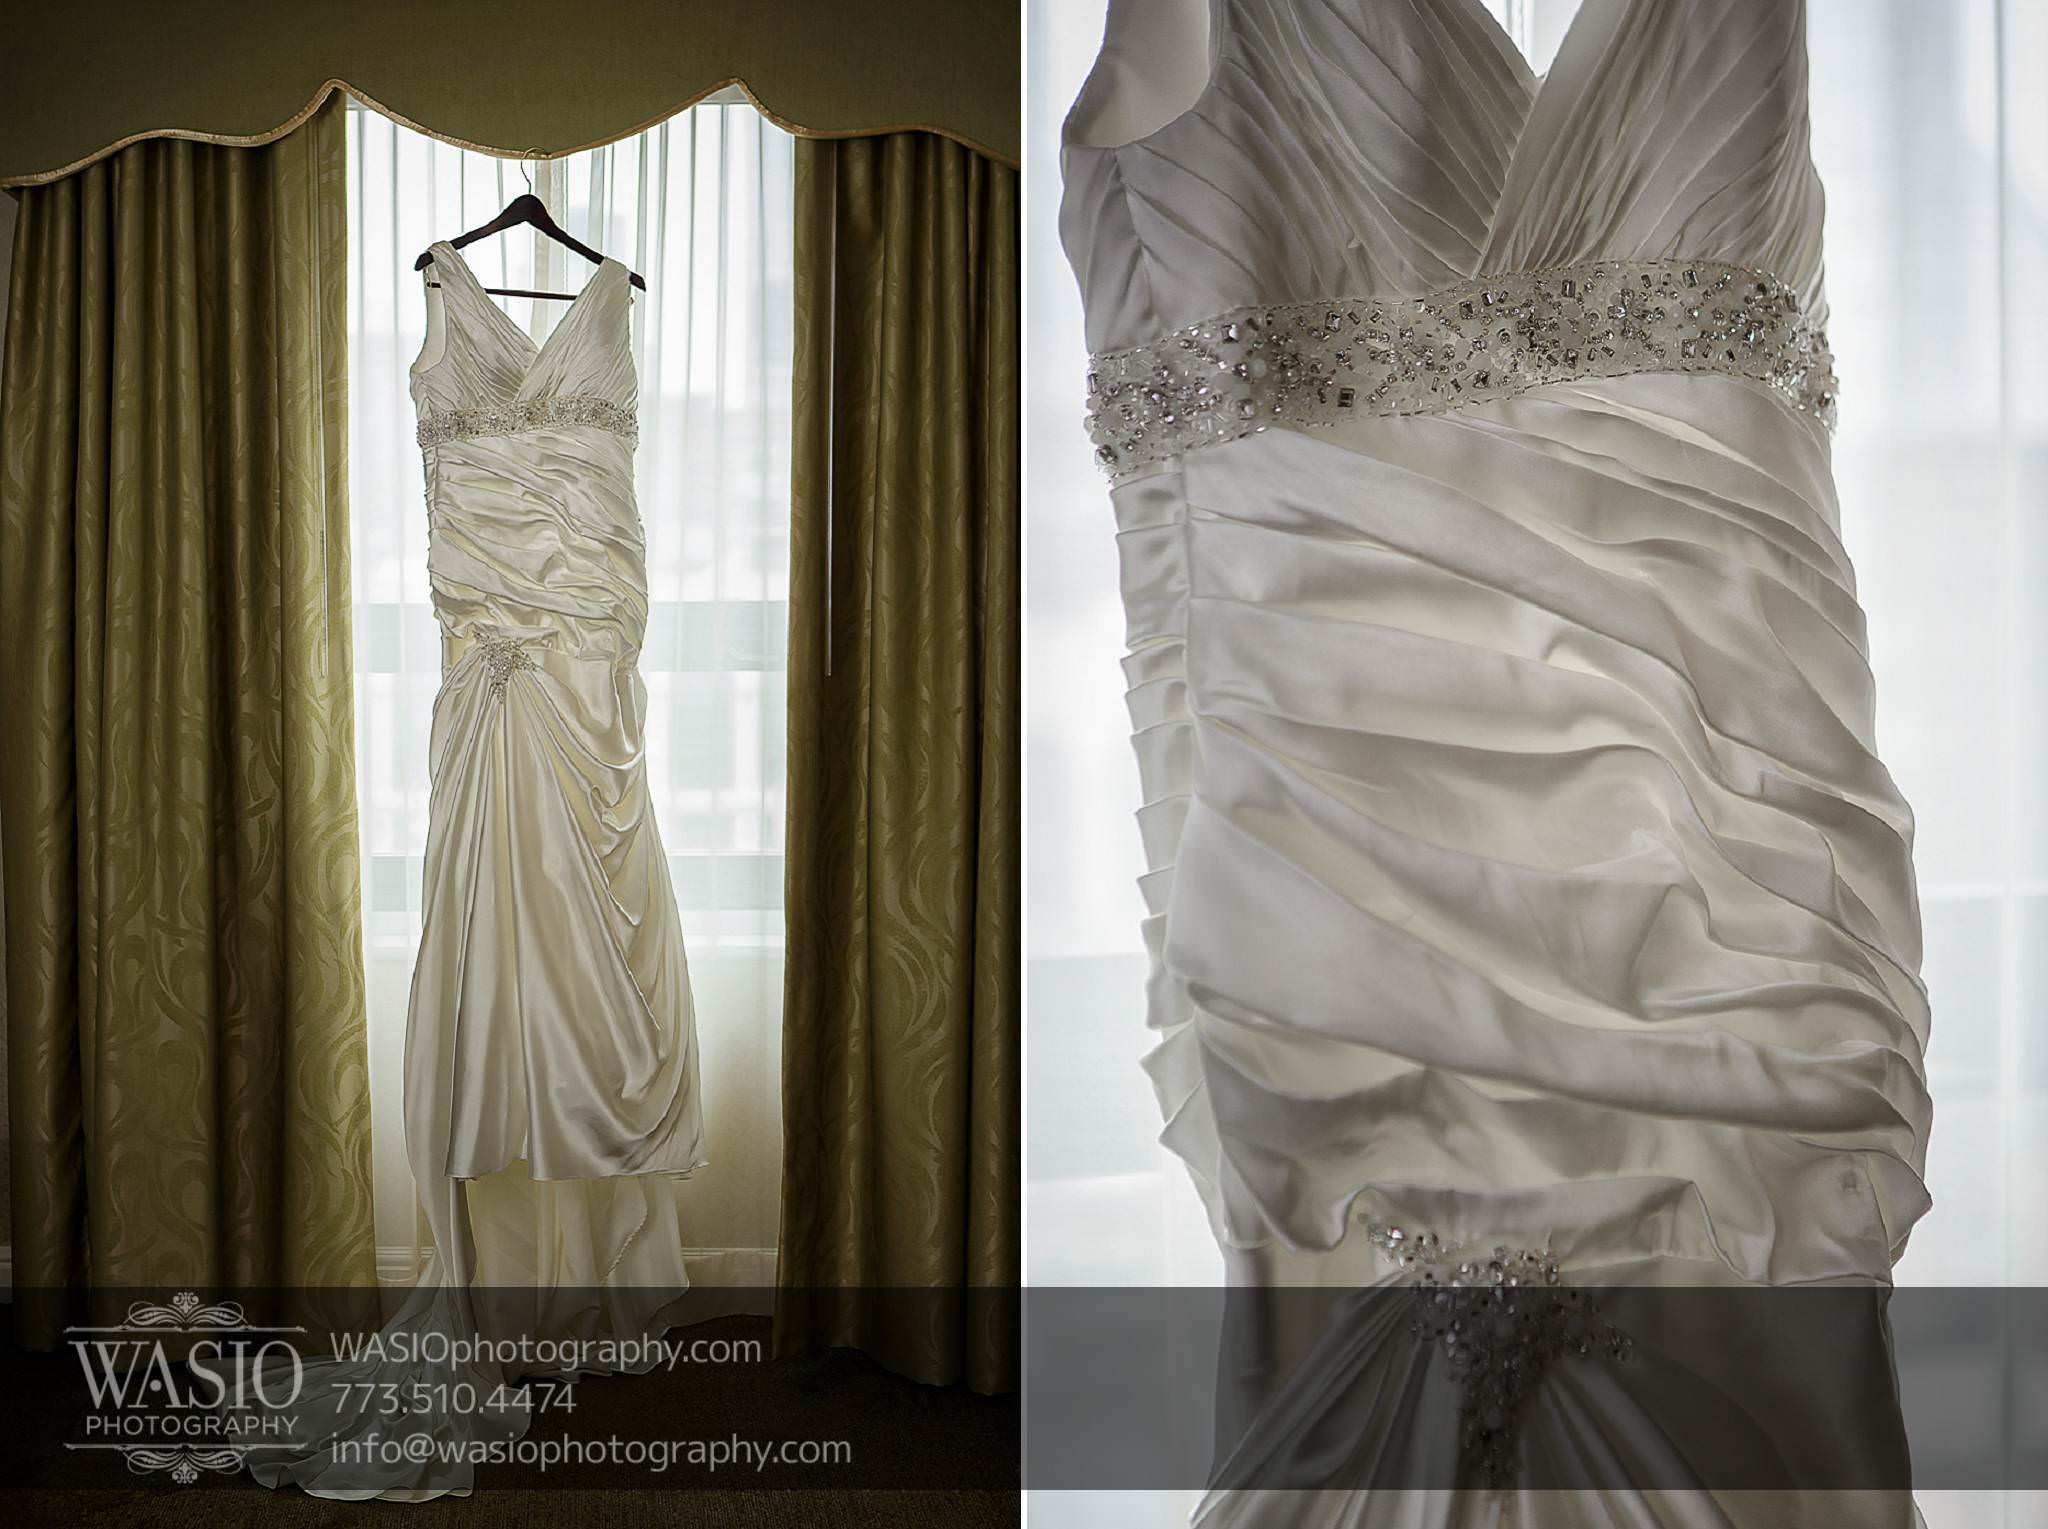 Chicago-wedding-photos-Palmer-House-wedding-dress-mermaid-white-crystals-halter-033 Chicago Wedding Photos - Svetlana + Yuriy